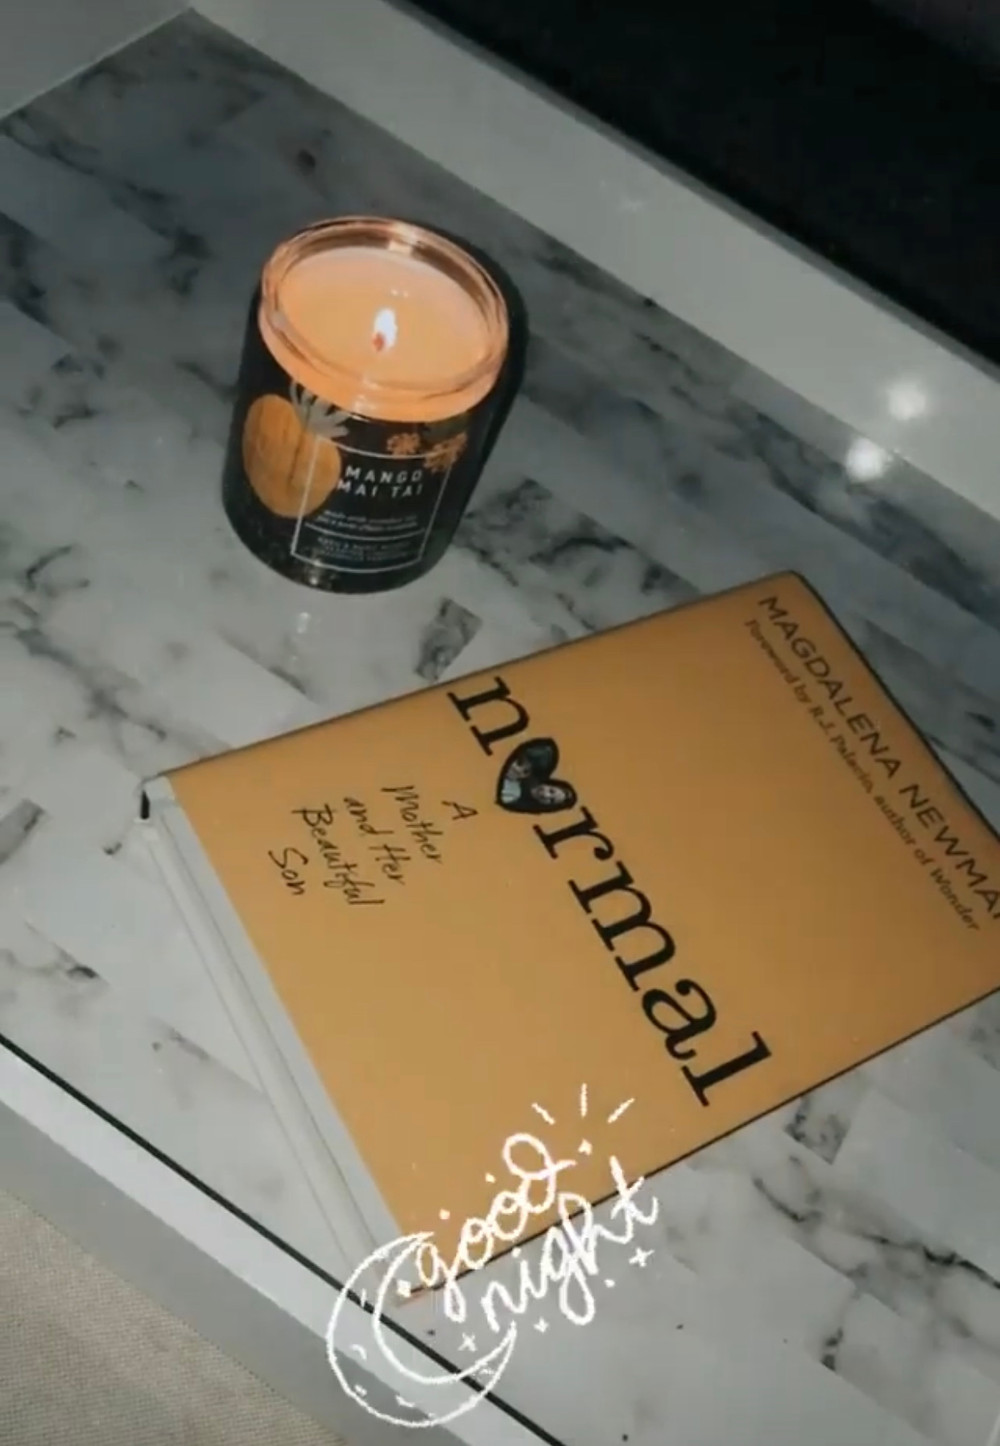 normal magdalena newman candle relax COVID-19